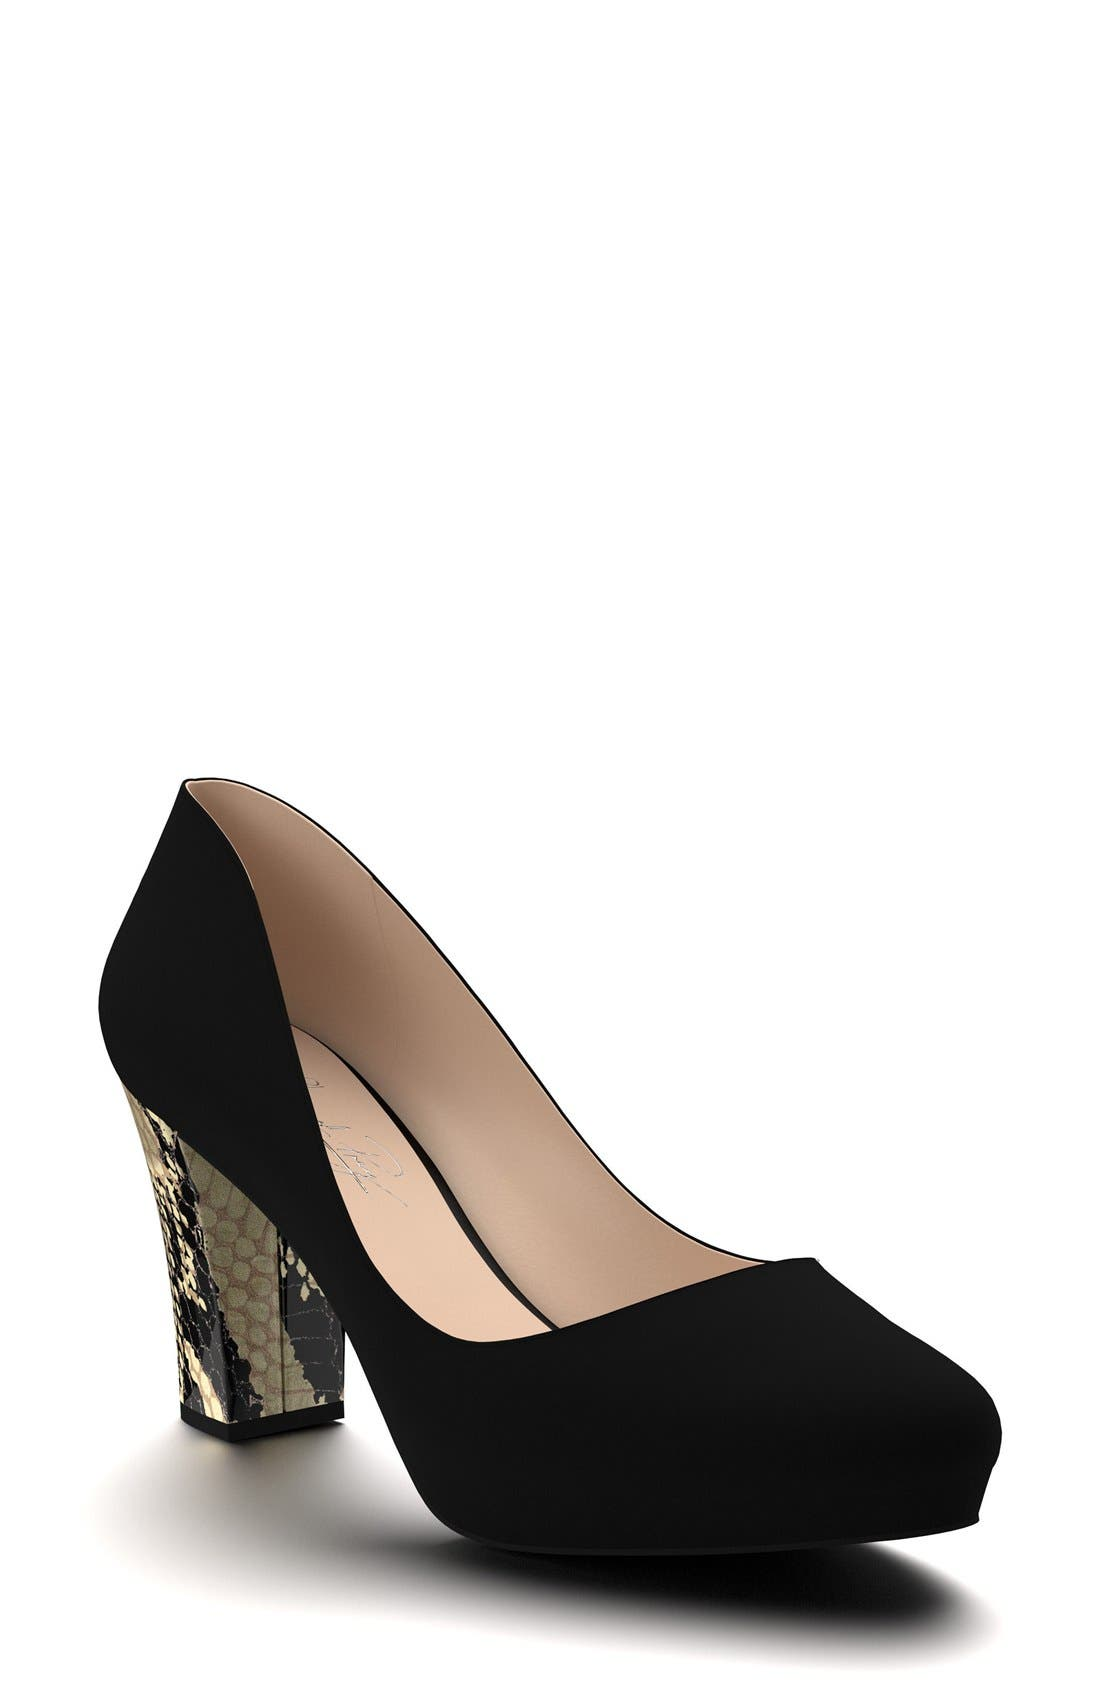 Shoes of Prey Block Heel Platform Pump (Women)